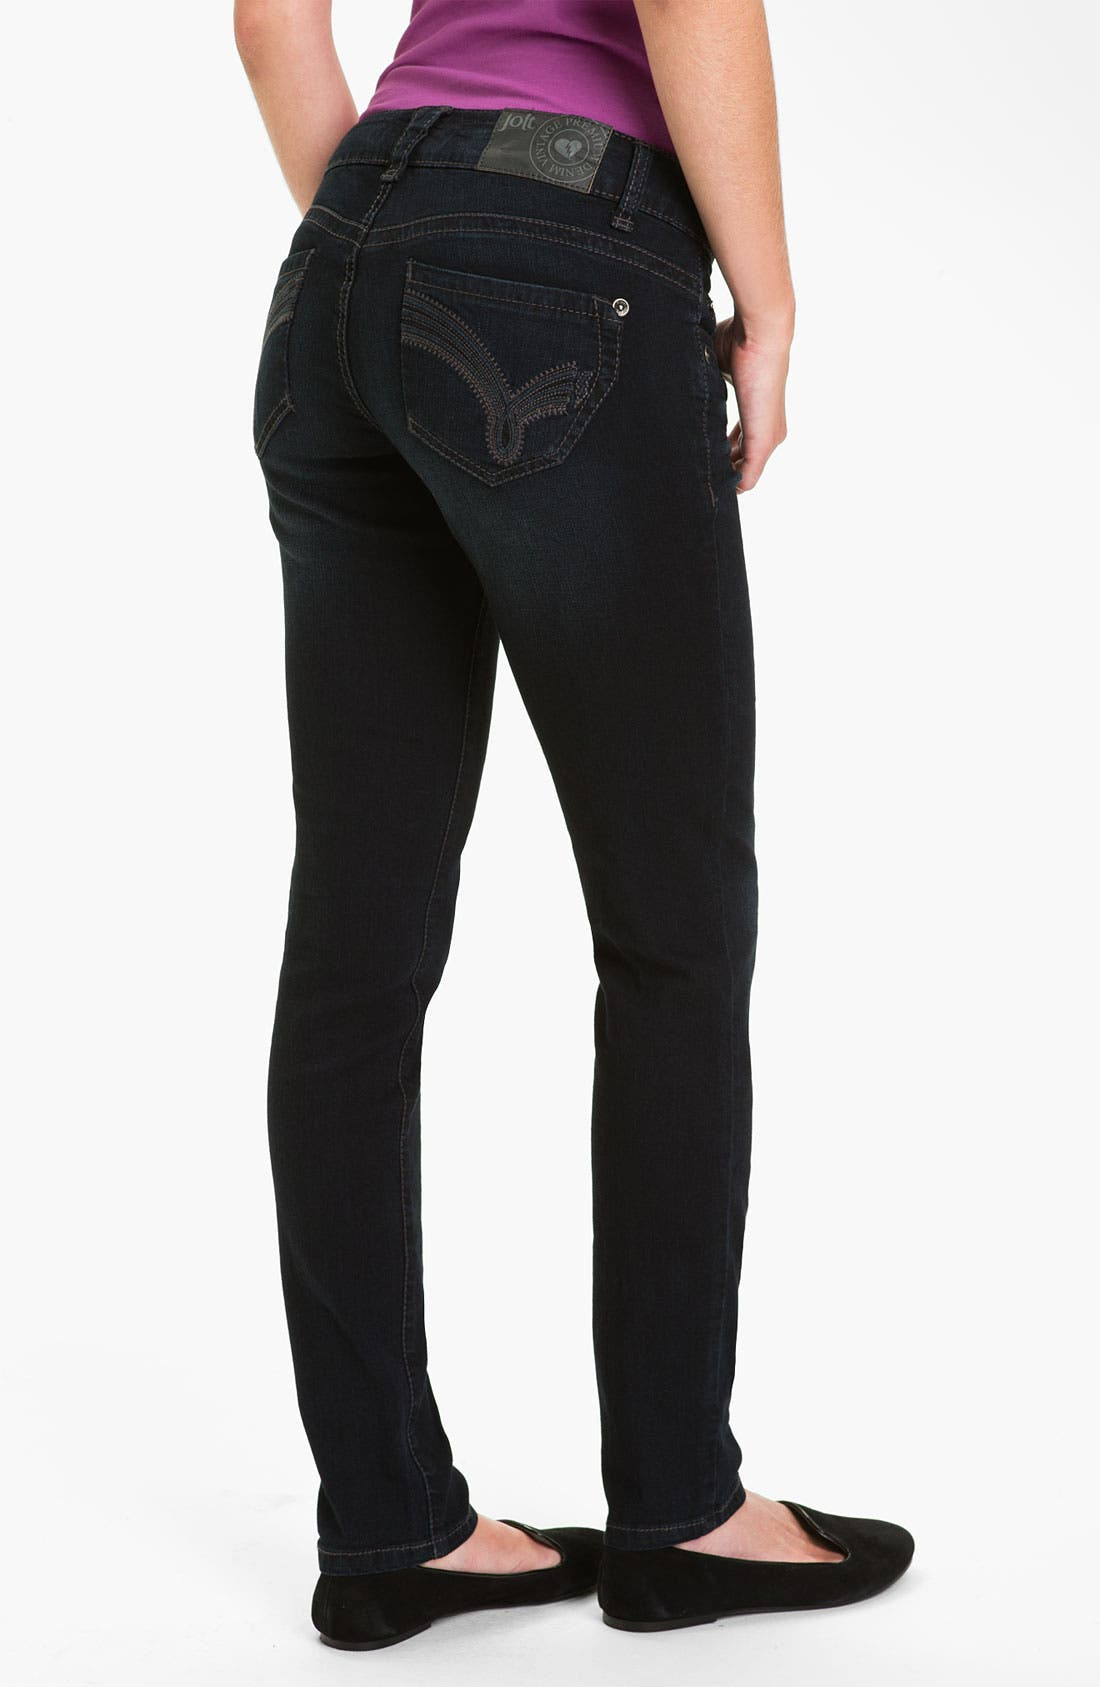 Alternate Image 1 Selected - Jolt 'J Pocket' Skinny Jeans (Juniors)